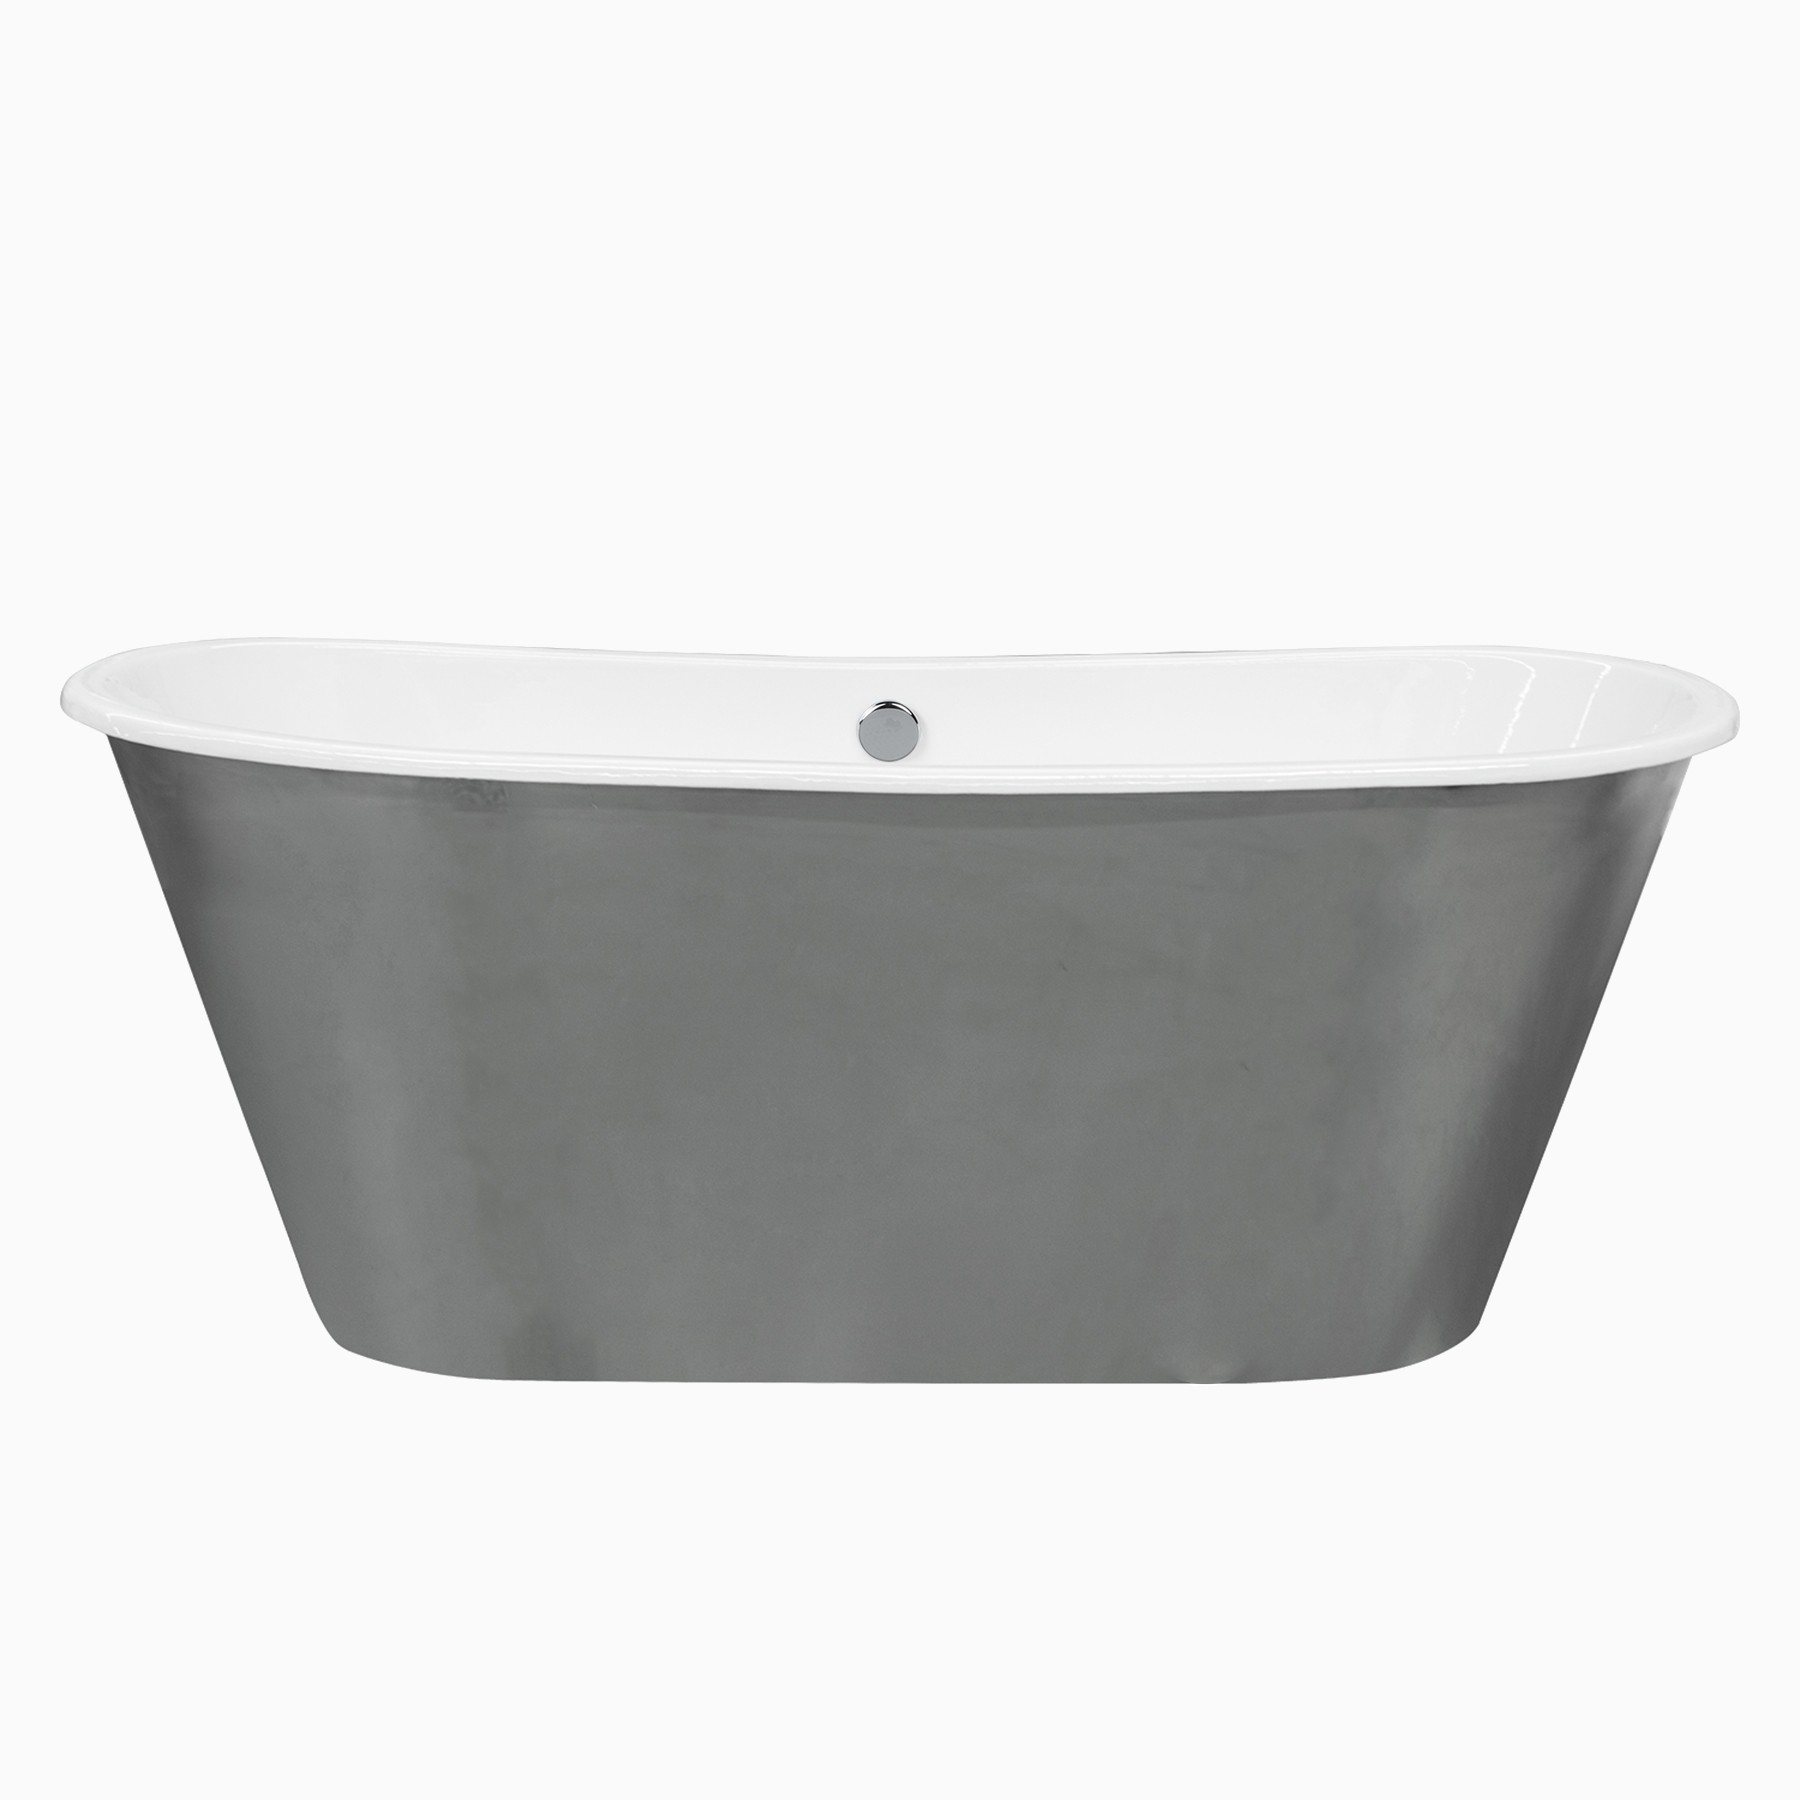 67 Woodward Cast Iron Freestanding Skirted Bathtub Traditional Oval Tub White Left Right Side Drain